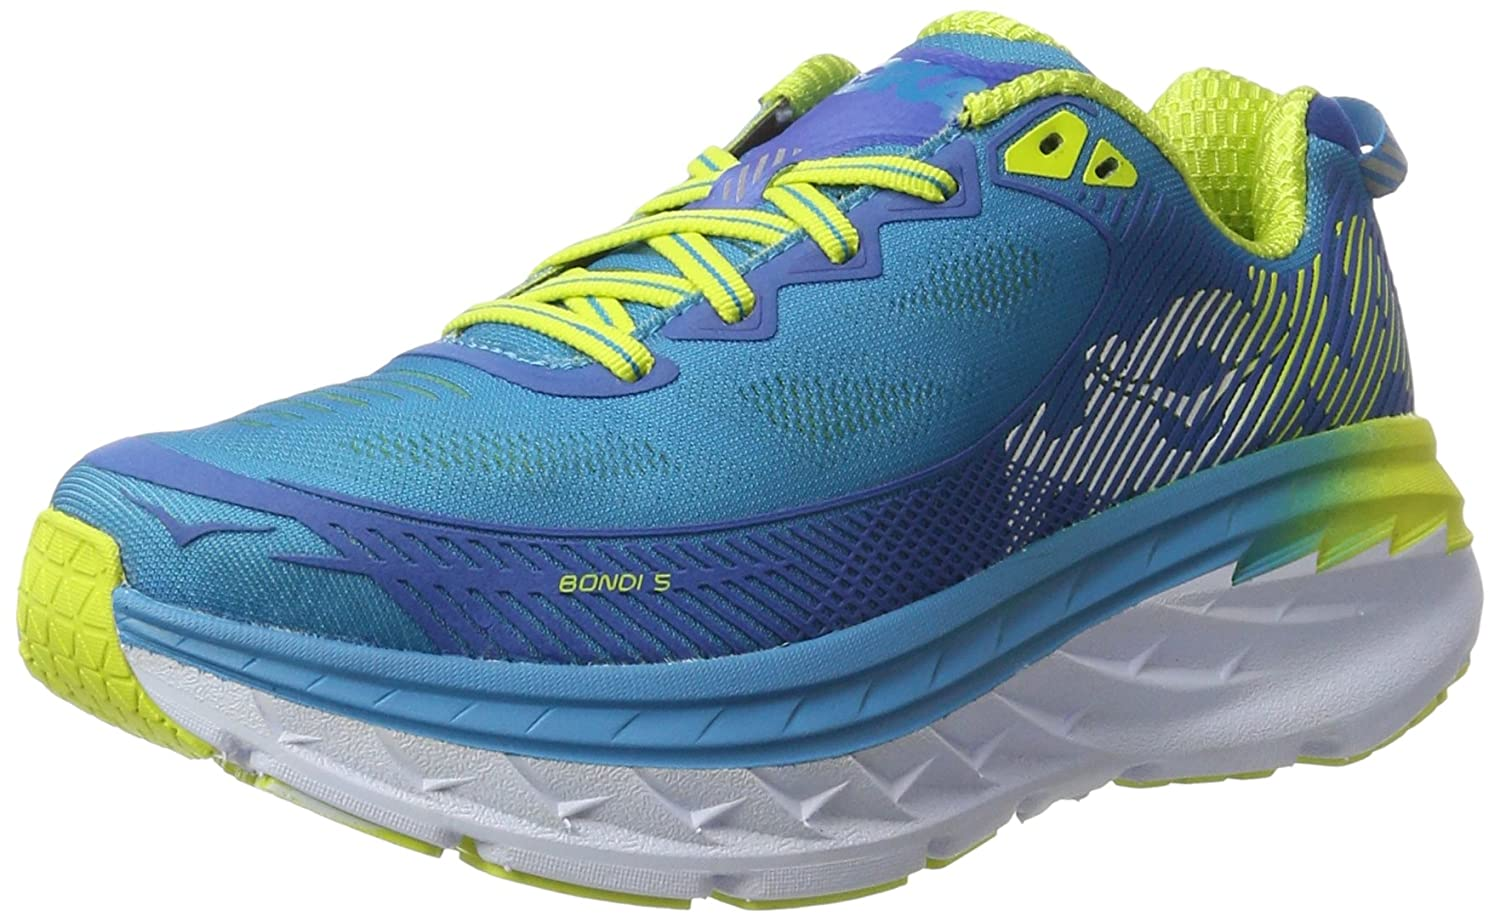 HOKA ONE ONE Women's Bondi 5 Running Shoe B01H6A88R8 8.5 B(M) US|Blue Jewel/Acid